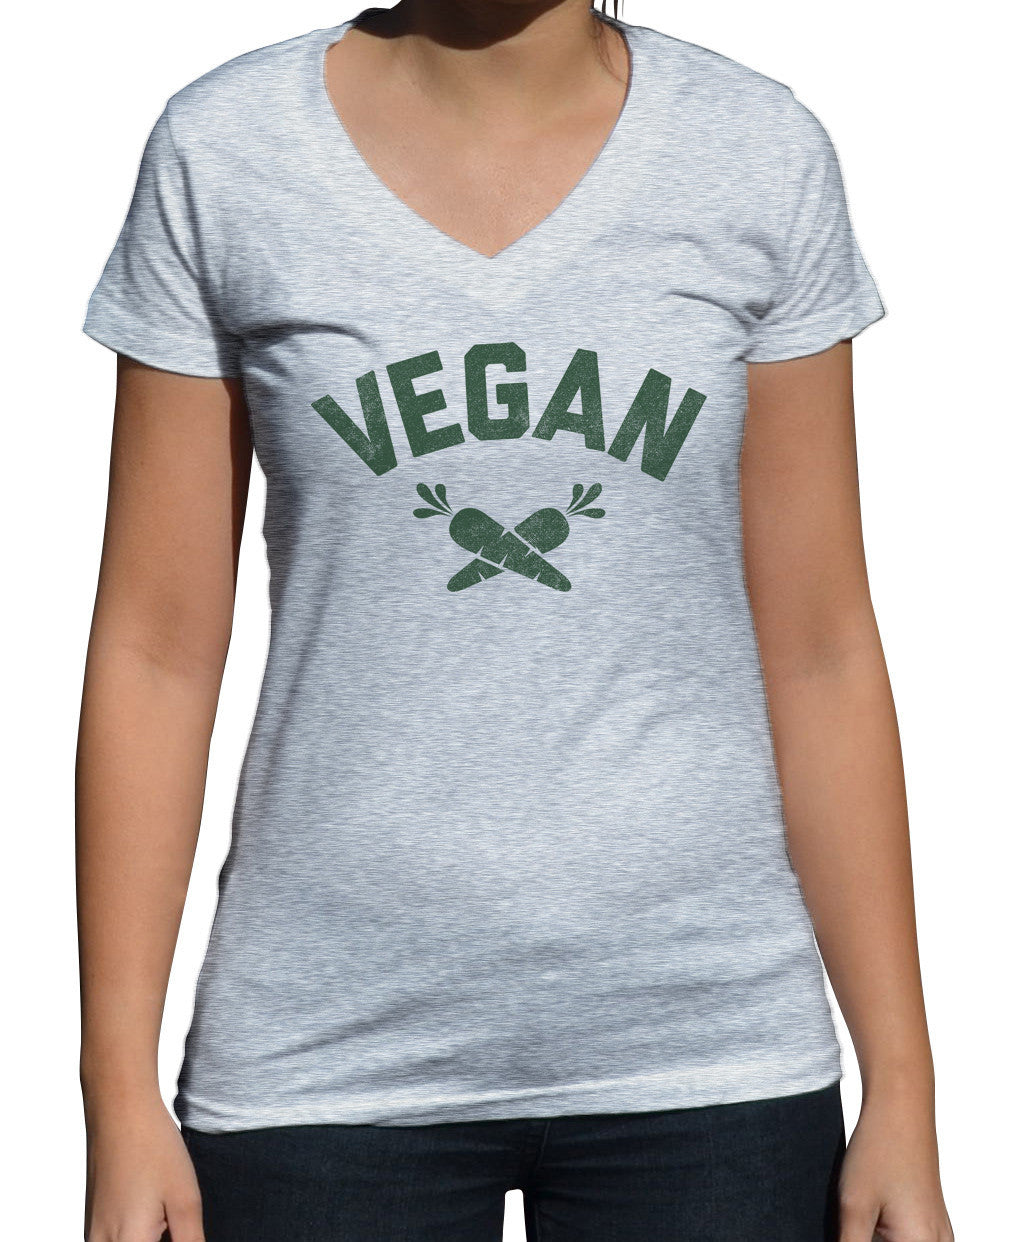 Women's Team Vegan Vneck T-Shirt